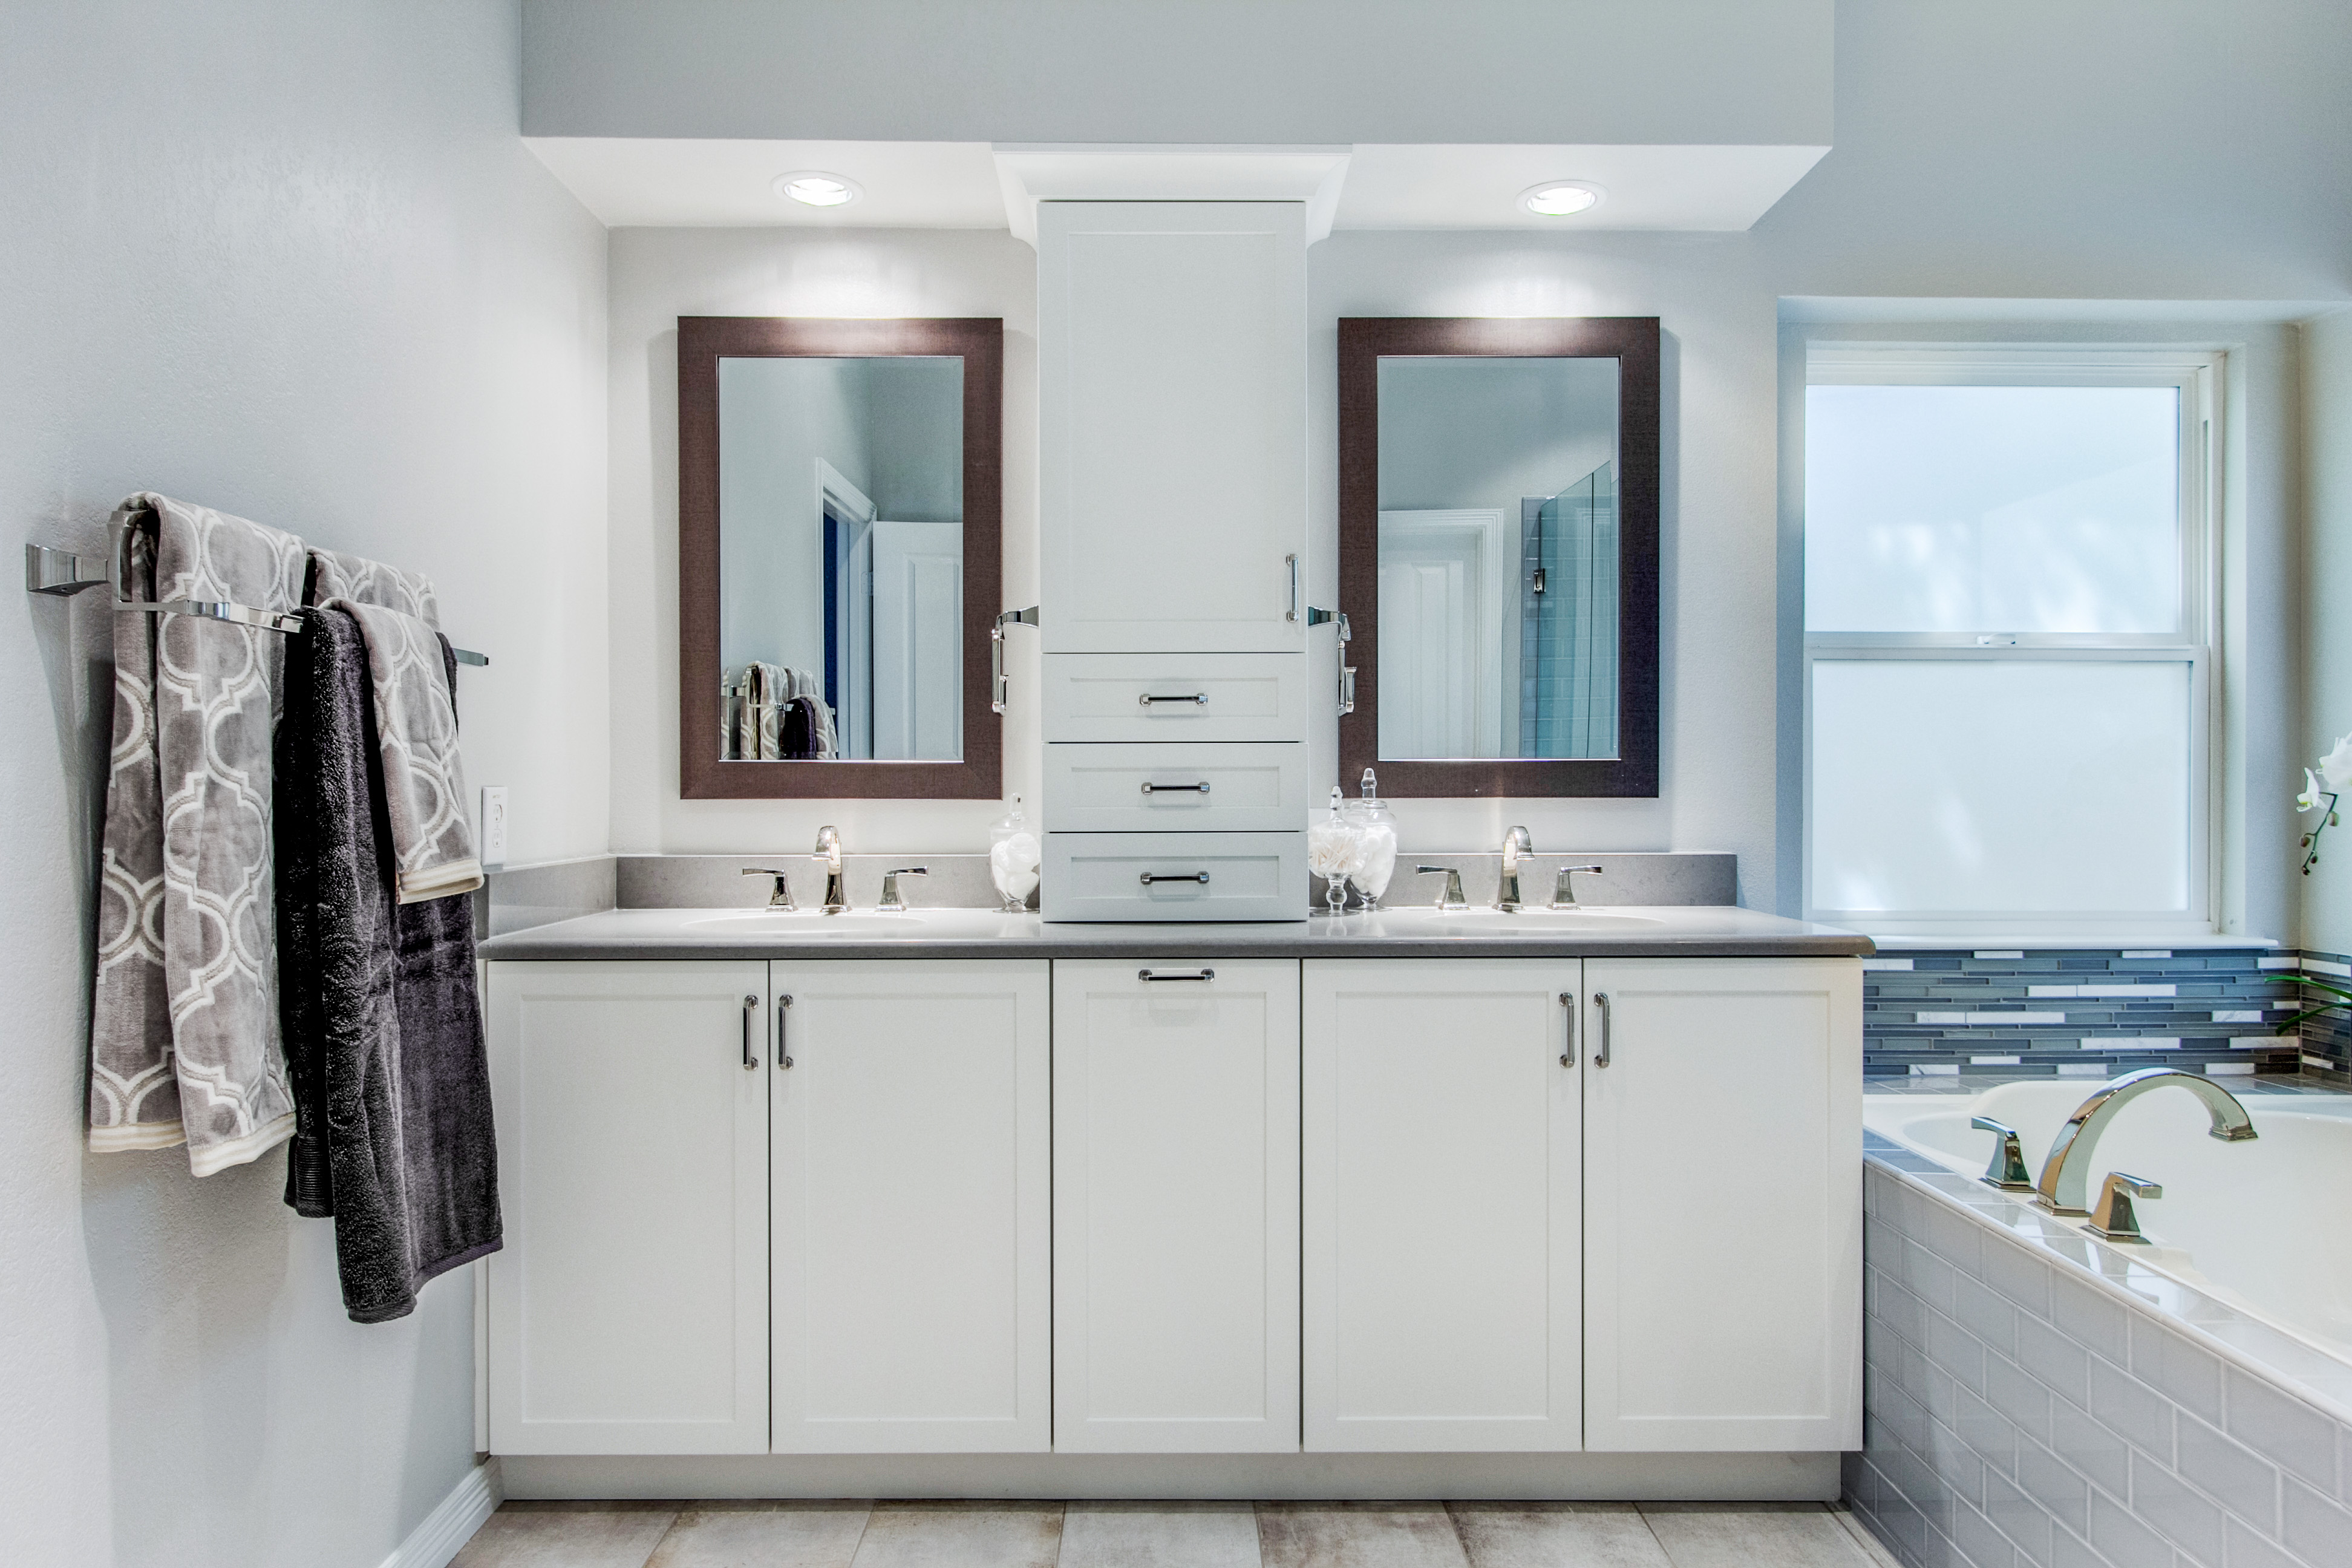 Snappy kitchens for Bath remodel dallas